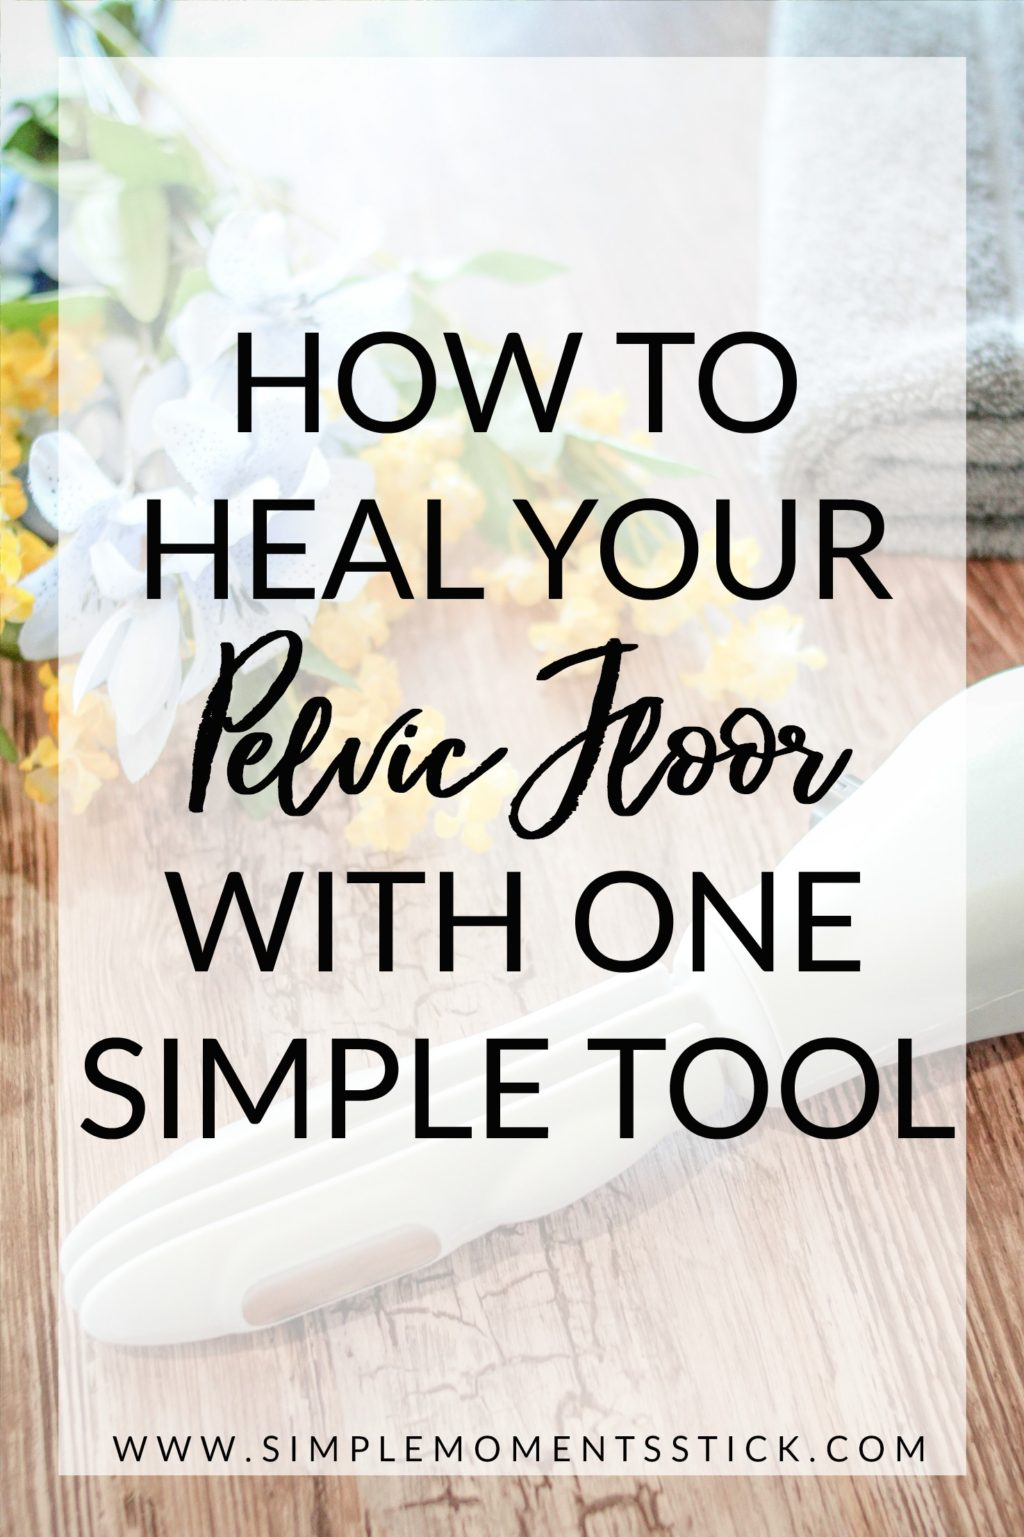 Great tips on how to heal your pelvic floor